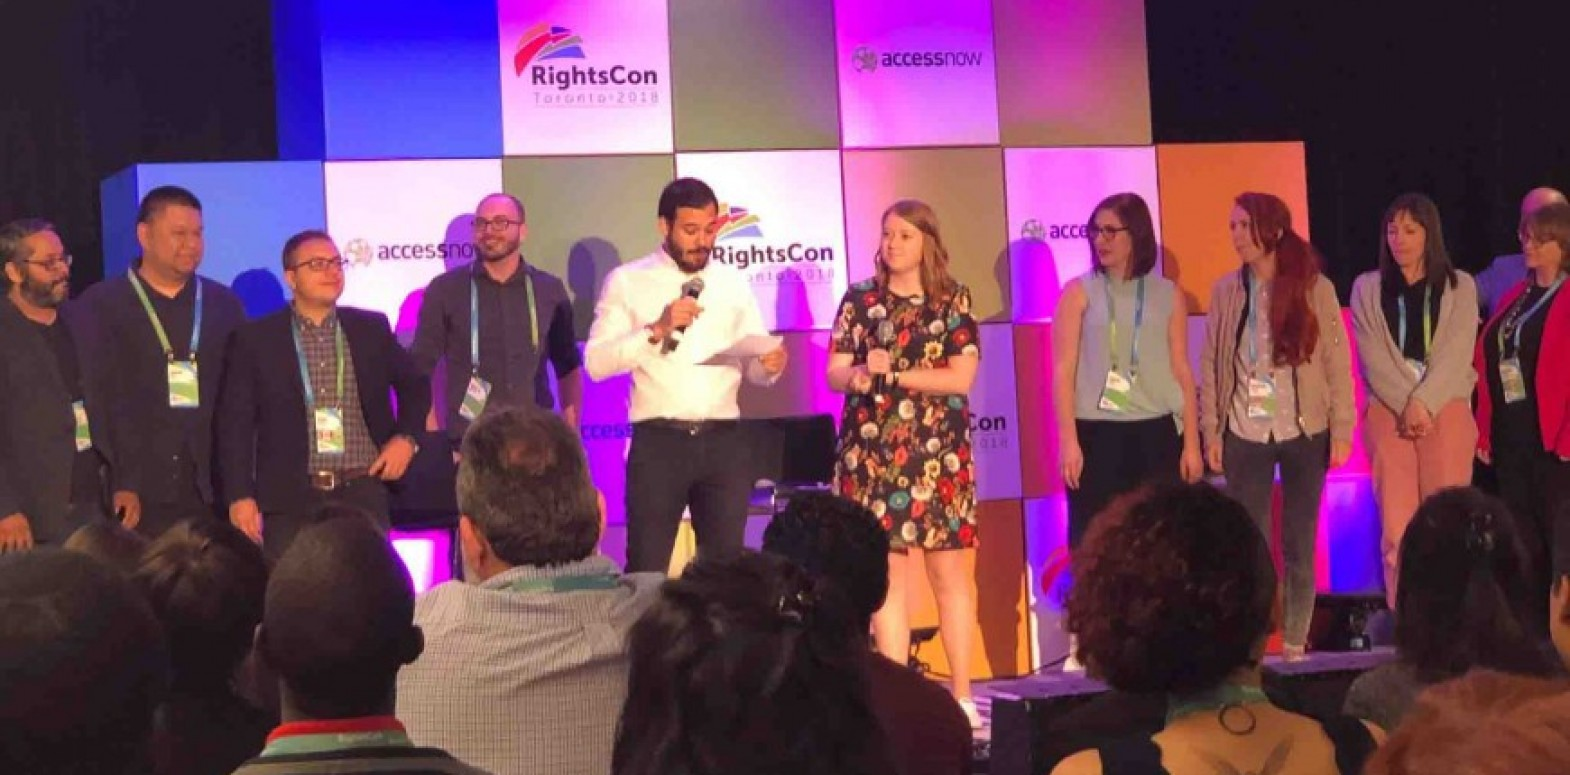 RightsCon kicks off with the participation of Verify-Sy